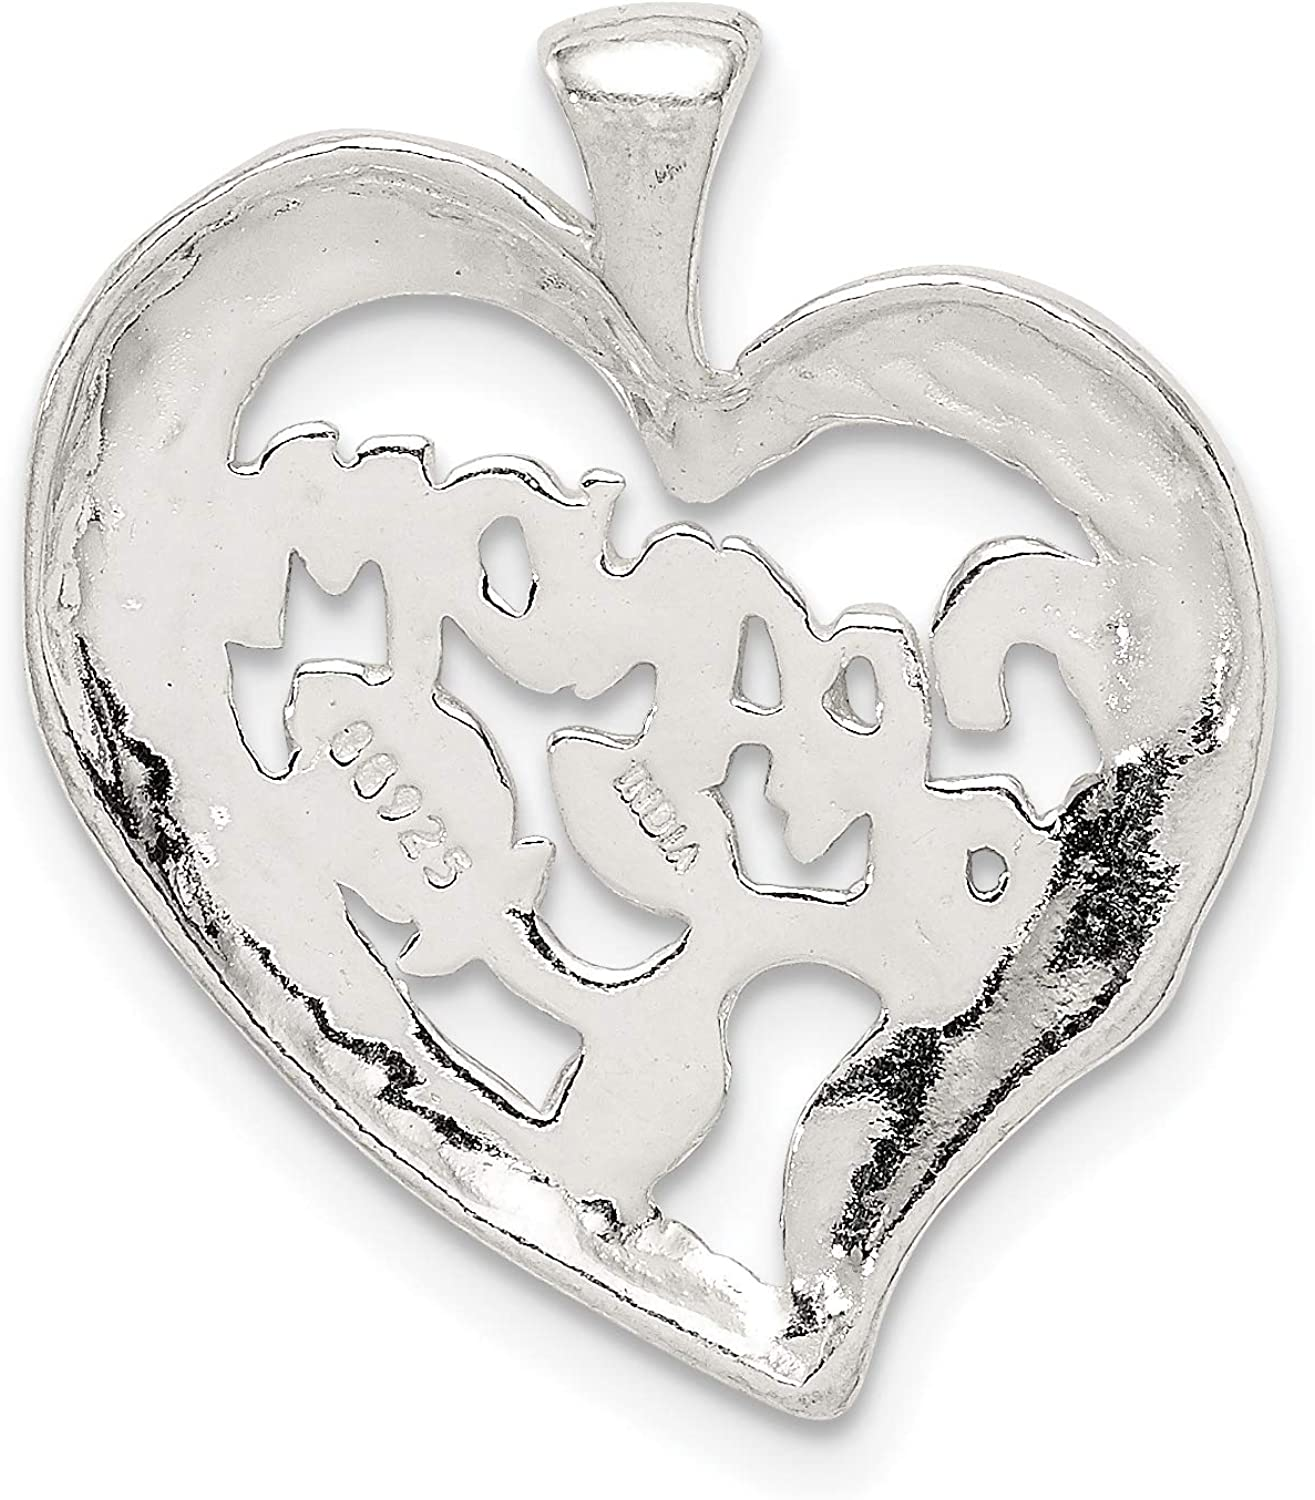 Grandma Words And Flowers On Heart Shaped Pendant In 925 Sterling Silver 20x22mm